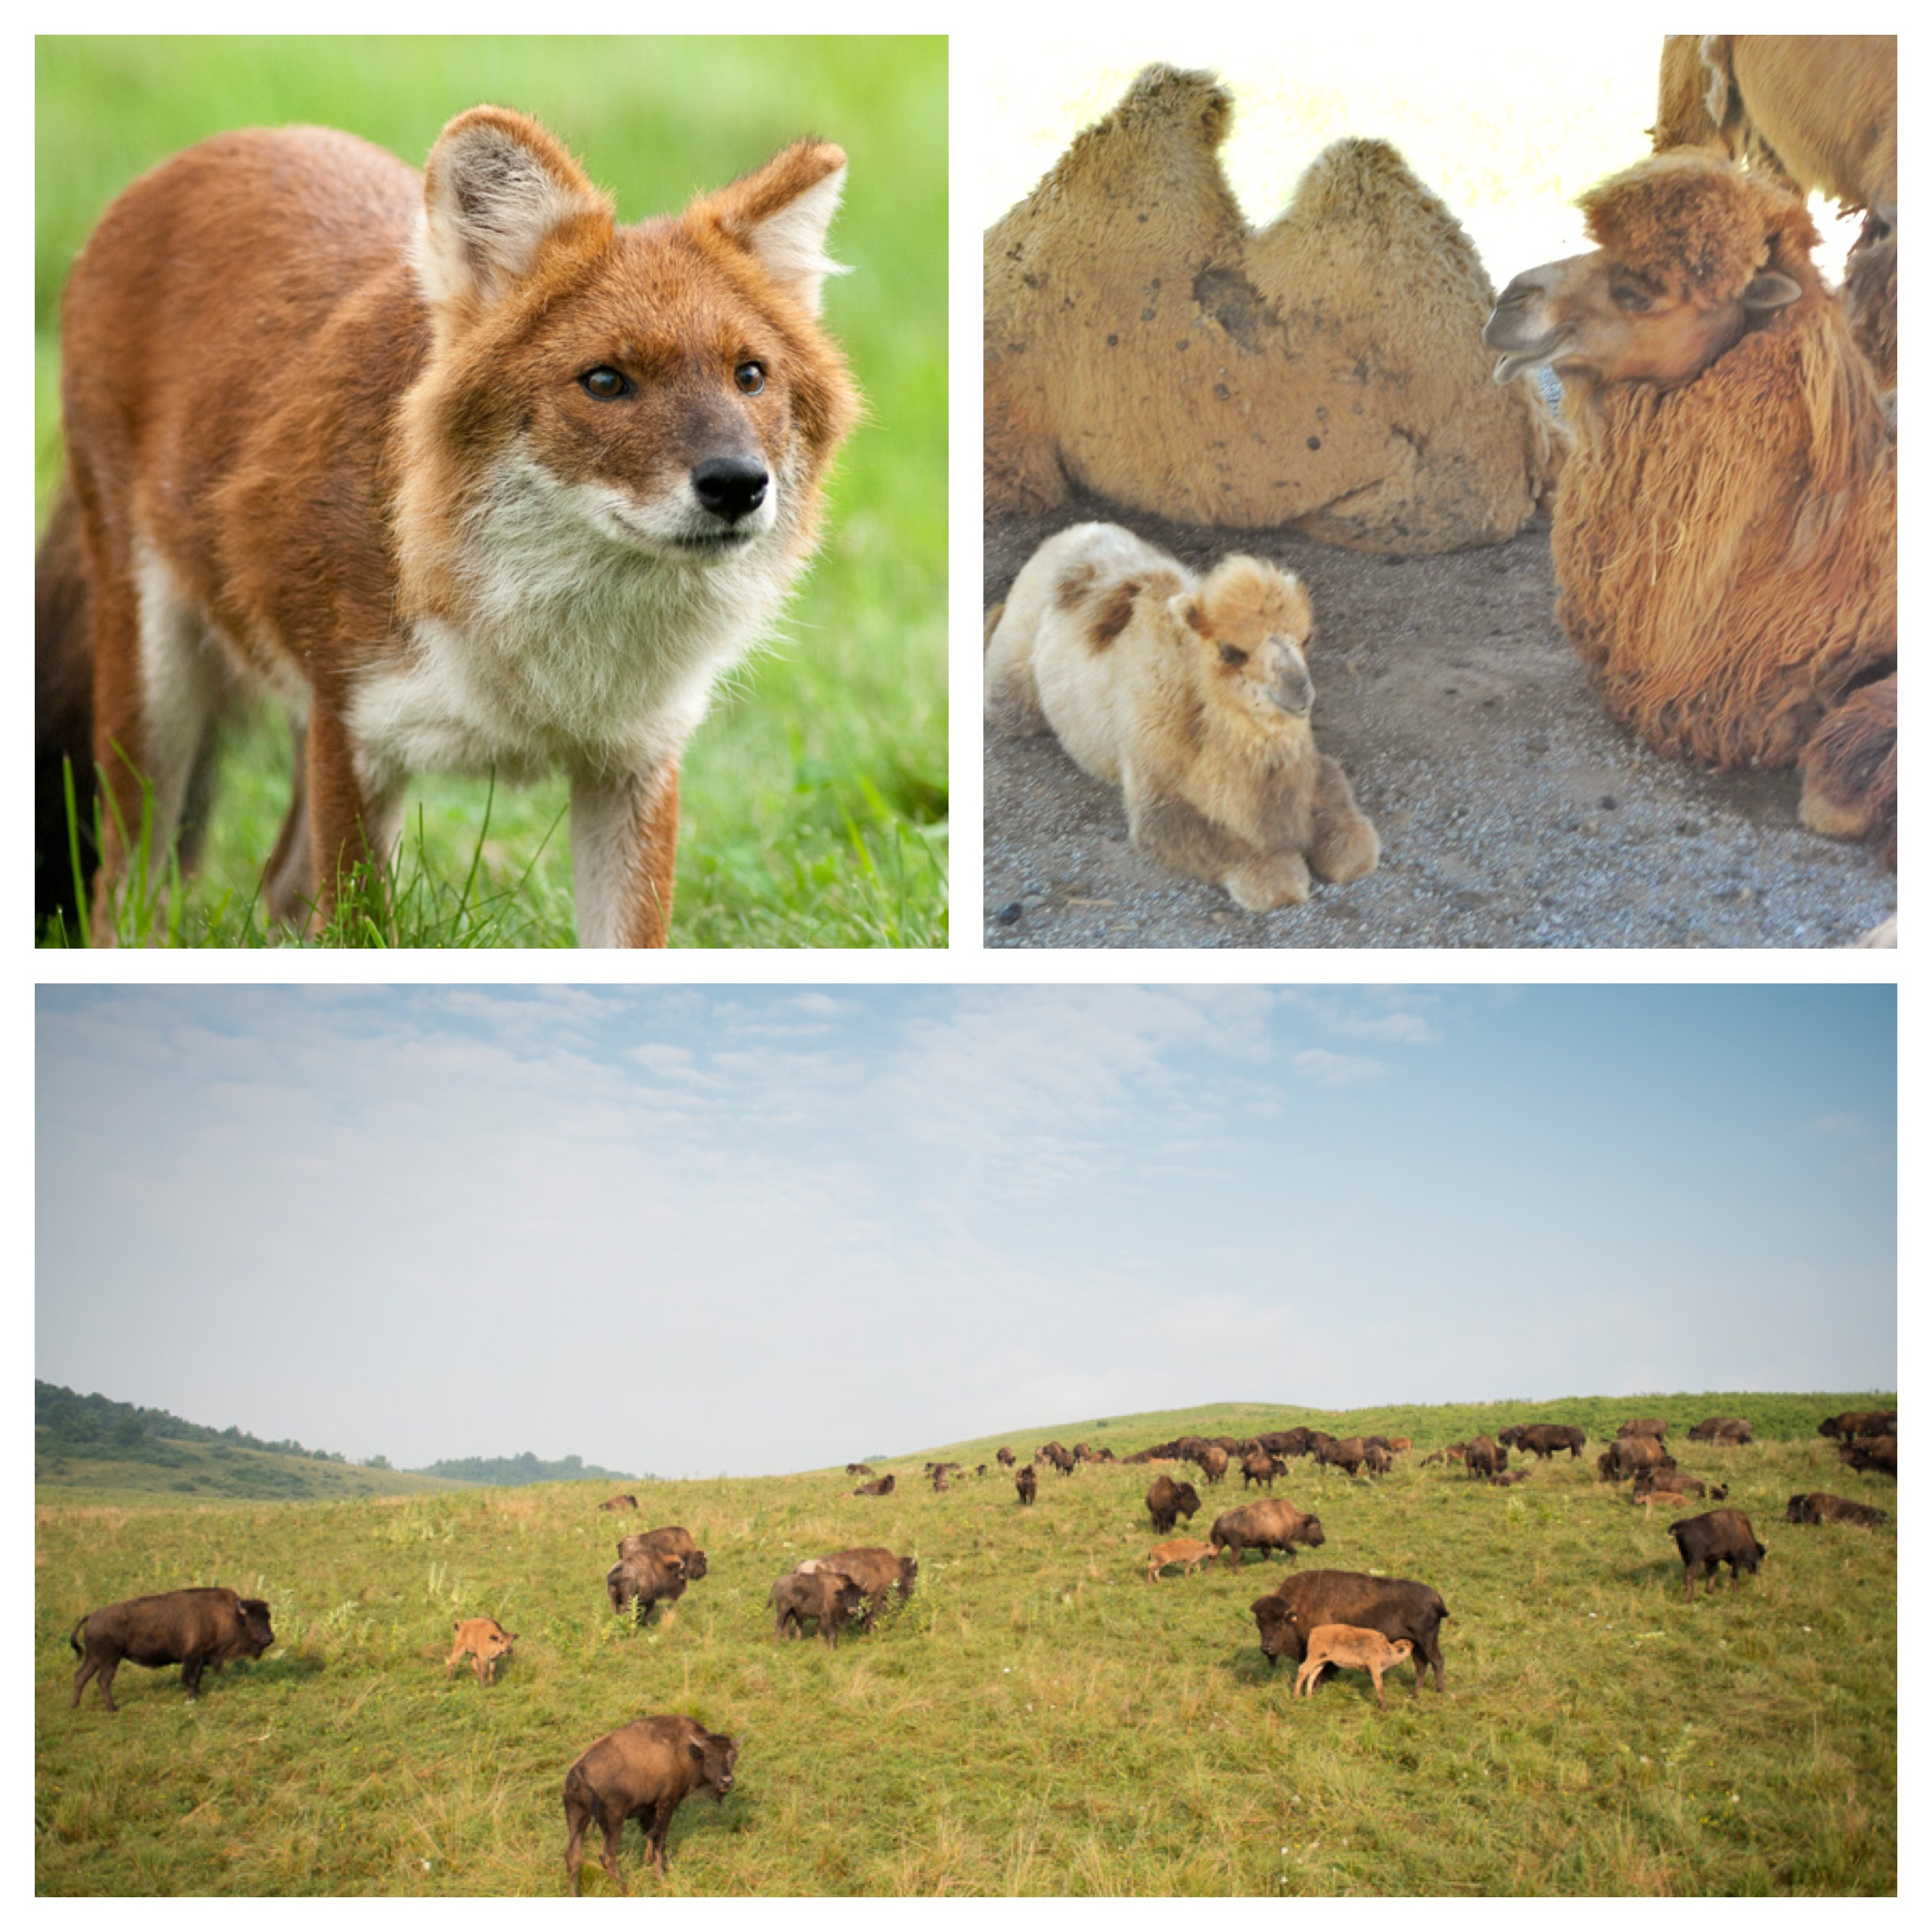 Animals at The Wilds